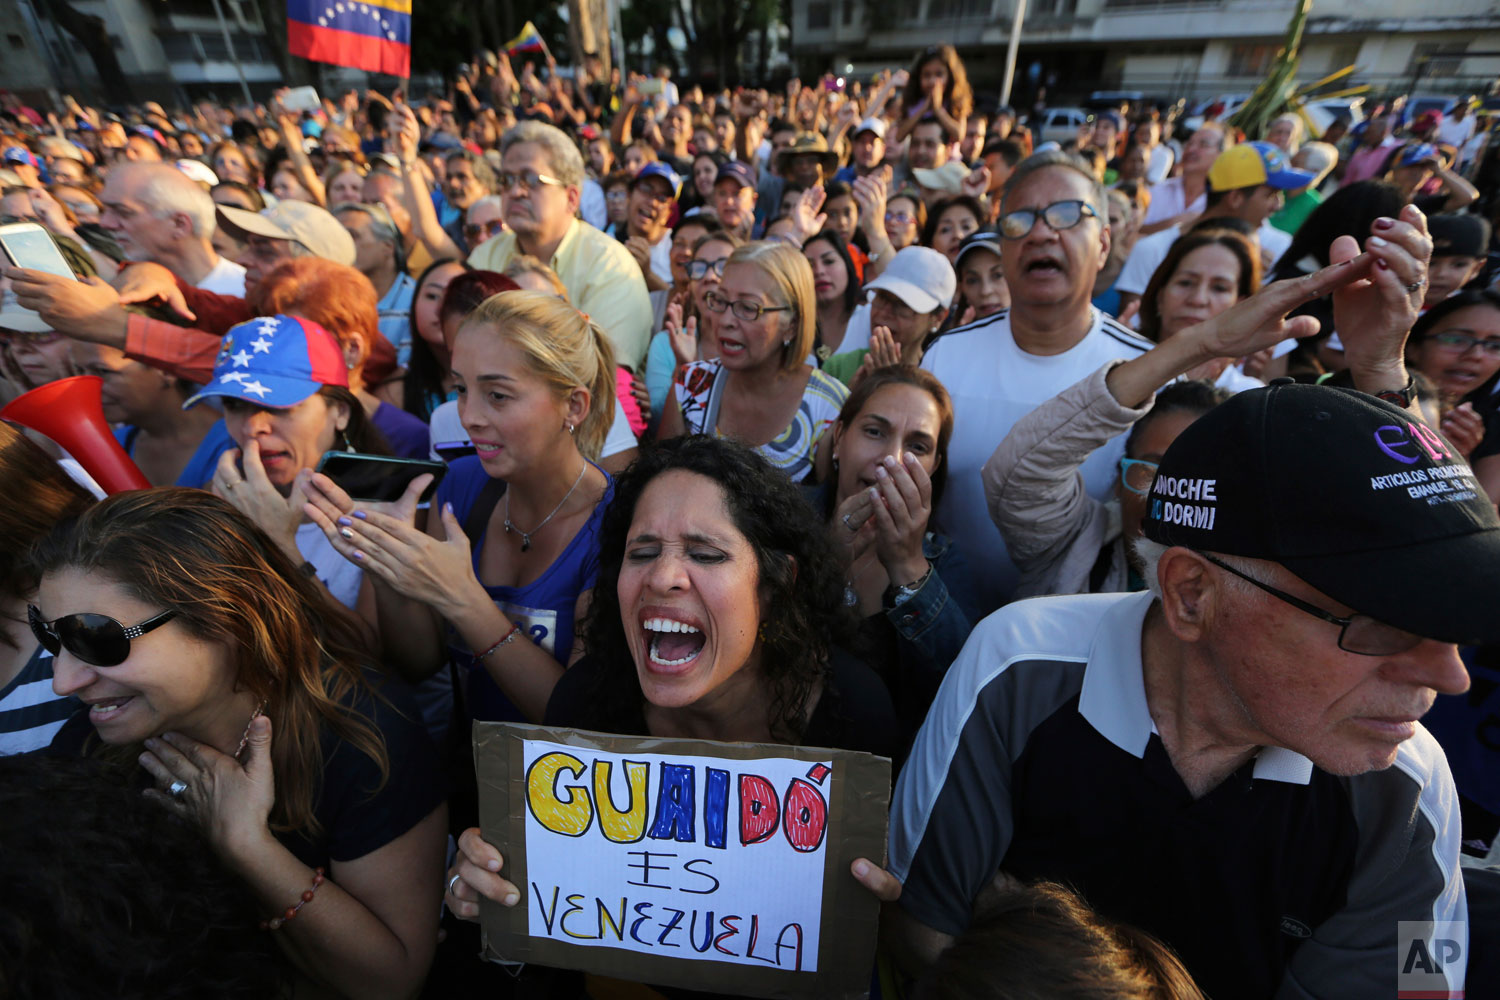 Supporters of self-proclaimed interim president Juan Guaido cheer during a rally in Caracas, Venezuela, Friday, April 5, 2019.  (AP Photo/Fernando Llano)